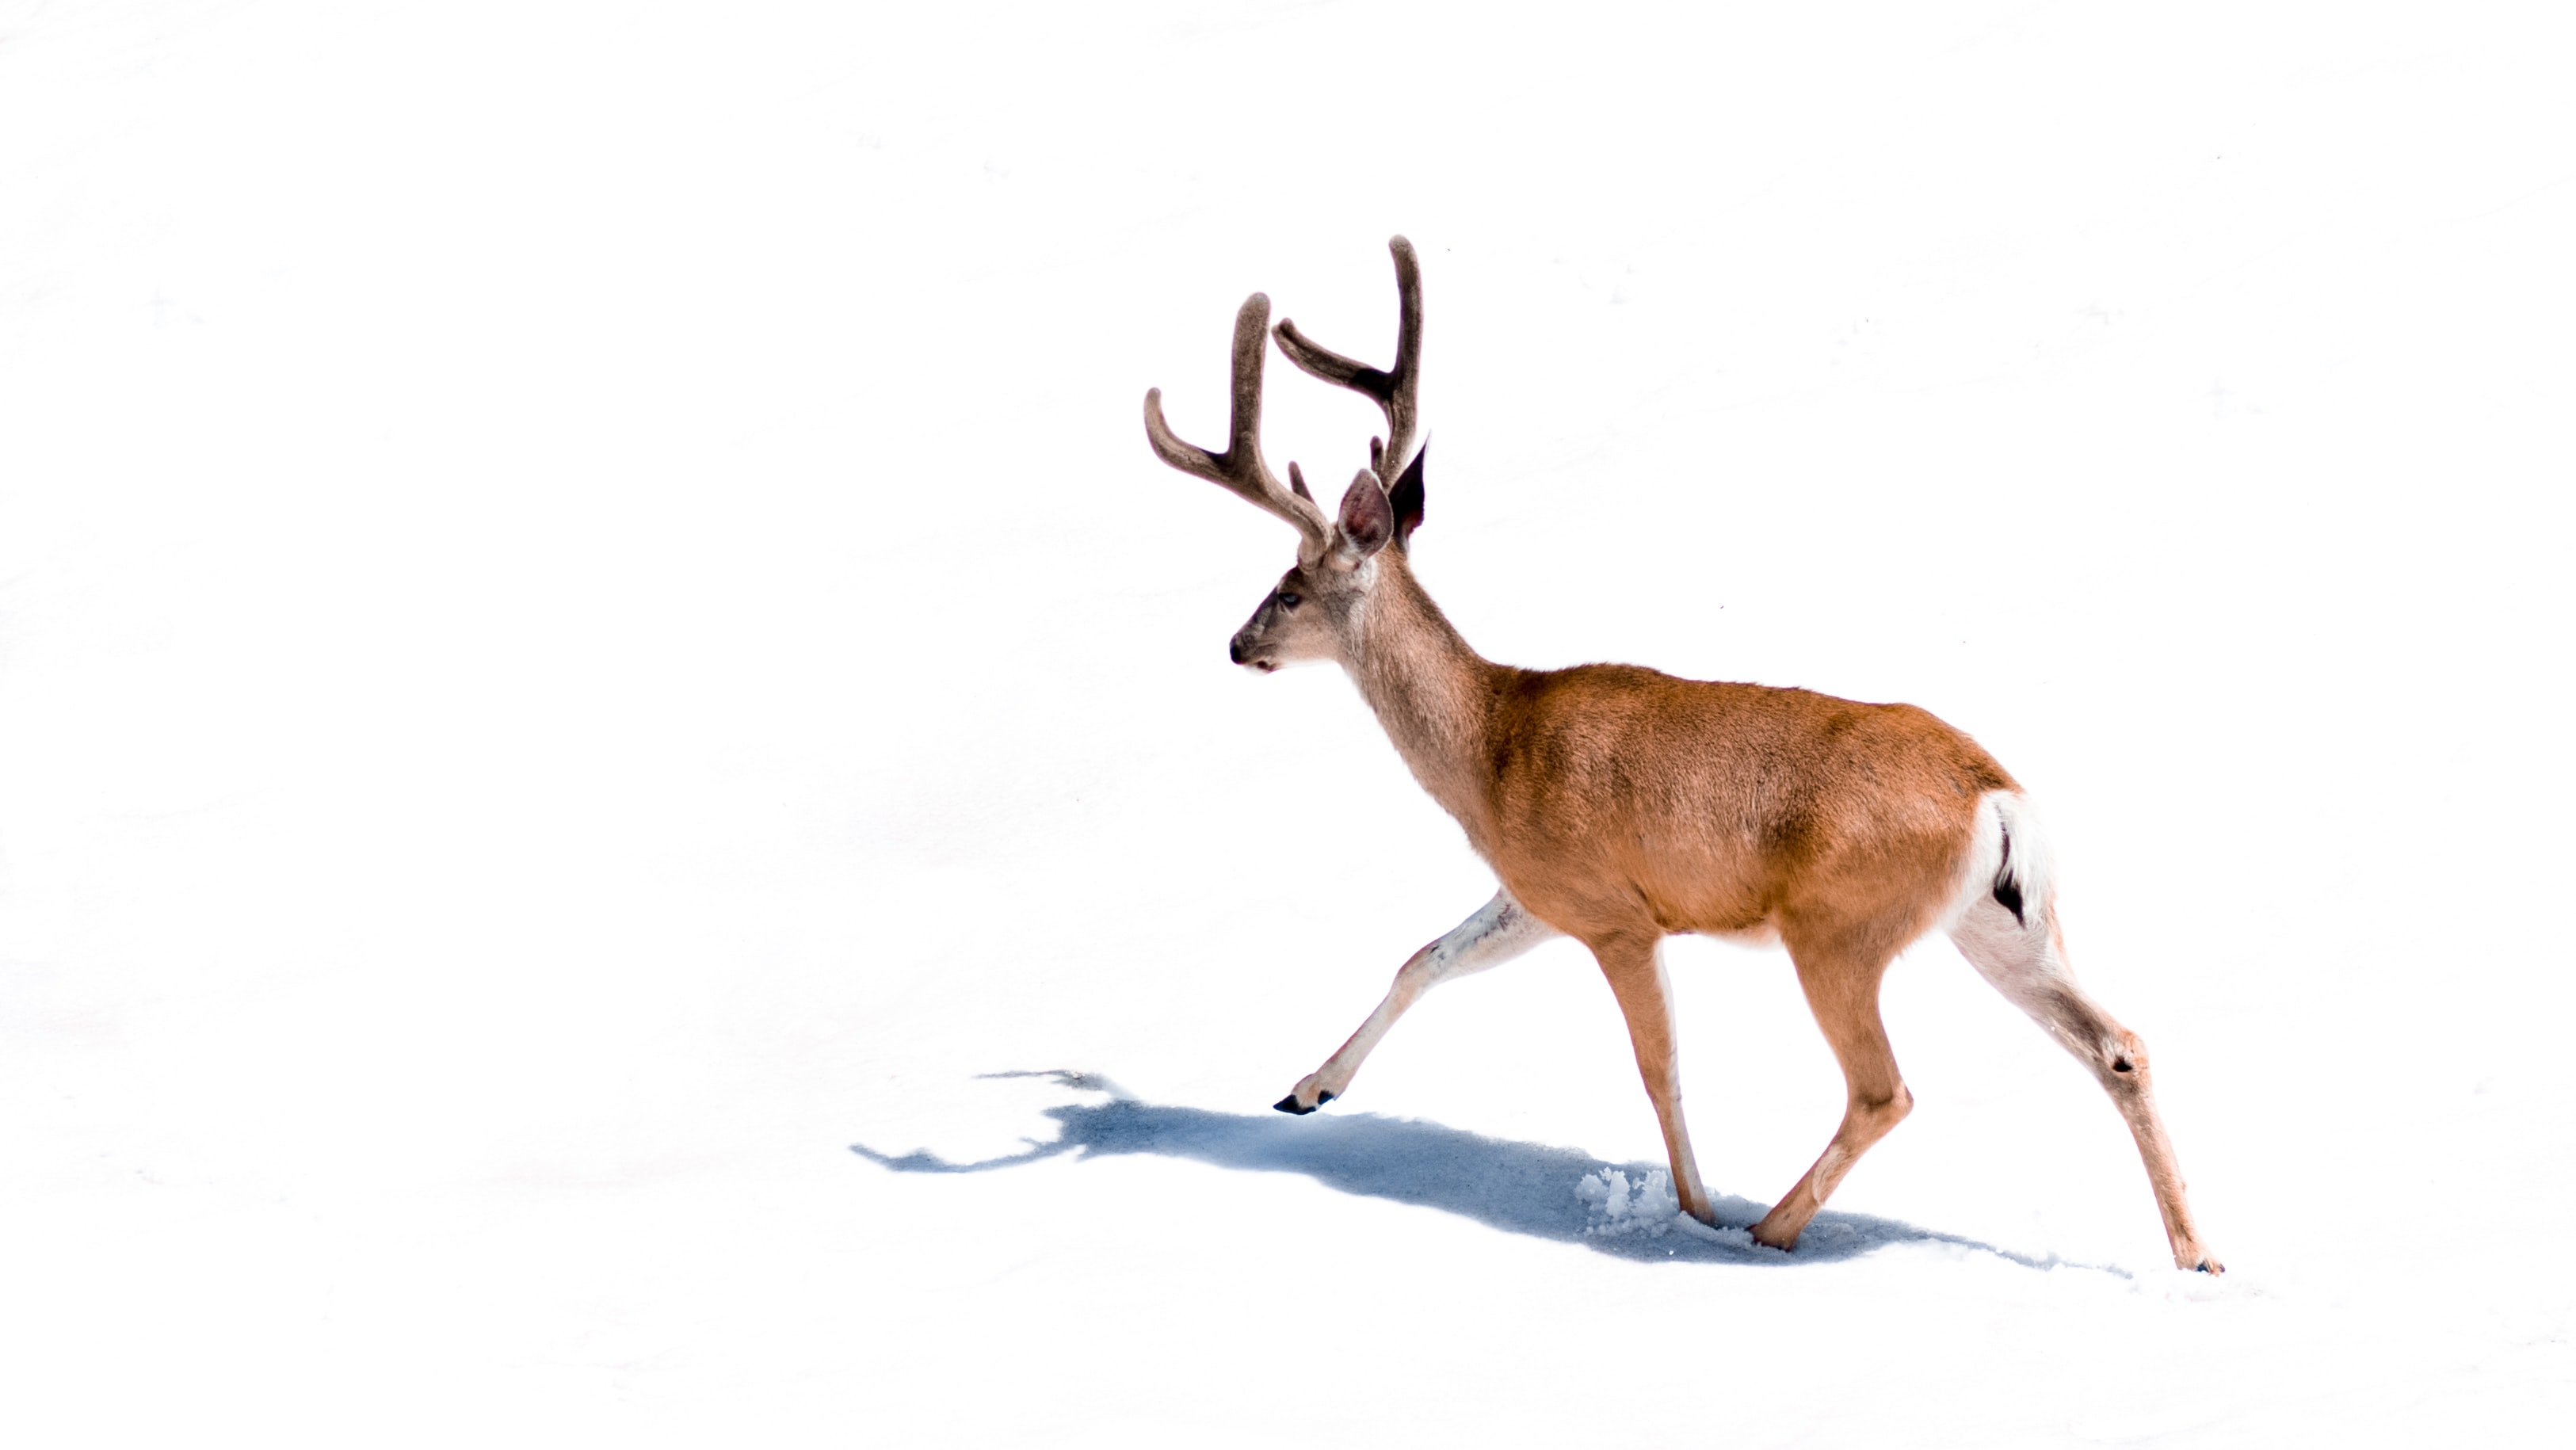 A deer walking through the snow at Mineral King in Sequoia National Park, California